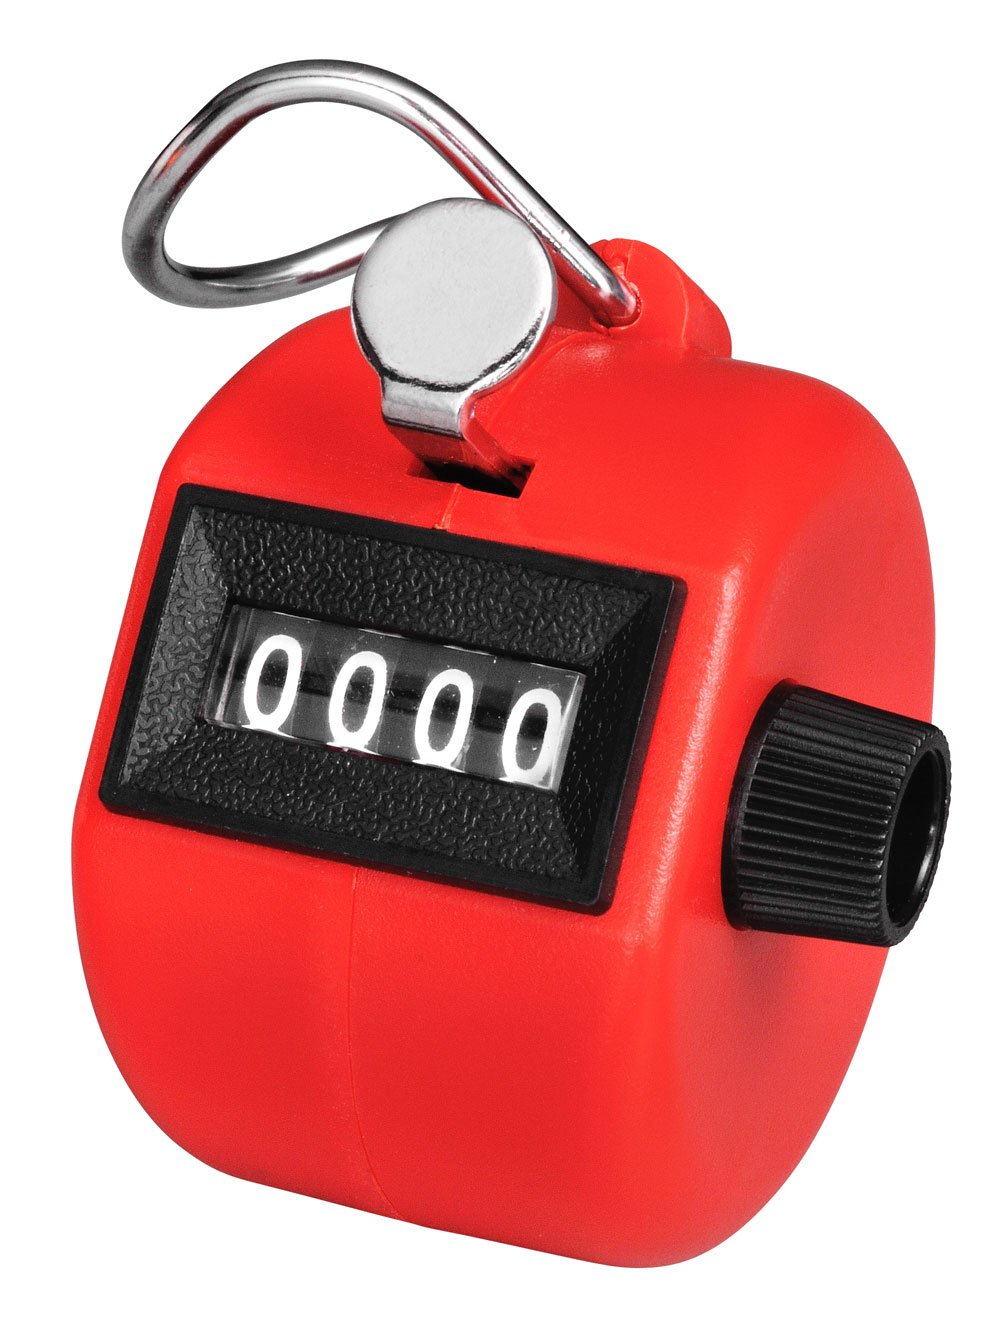 Red Aain TM004 Hand Held Tally Palm Clicker Counter with 4 Digit Display for Lap/sport/coach/school/event Aain®